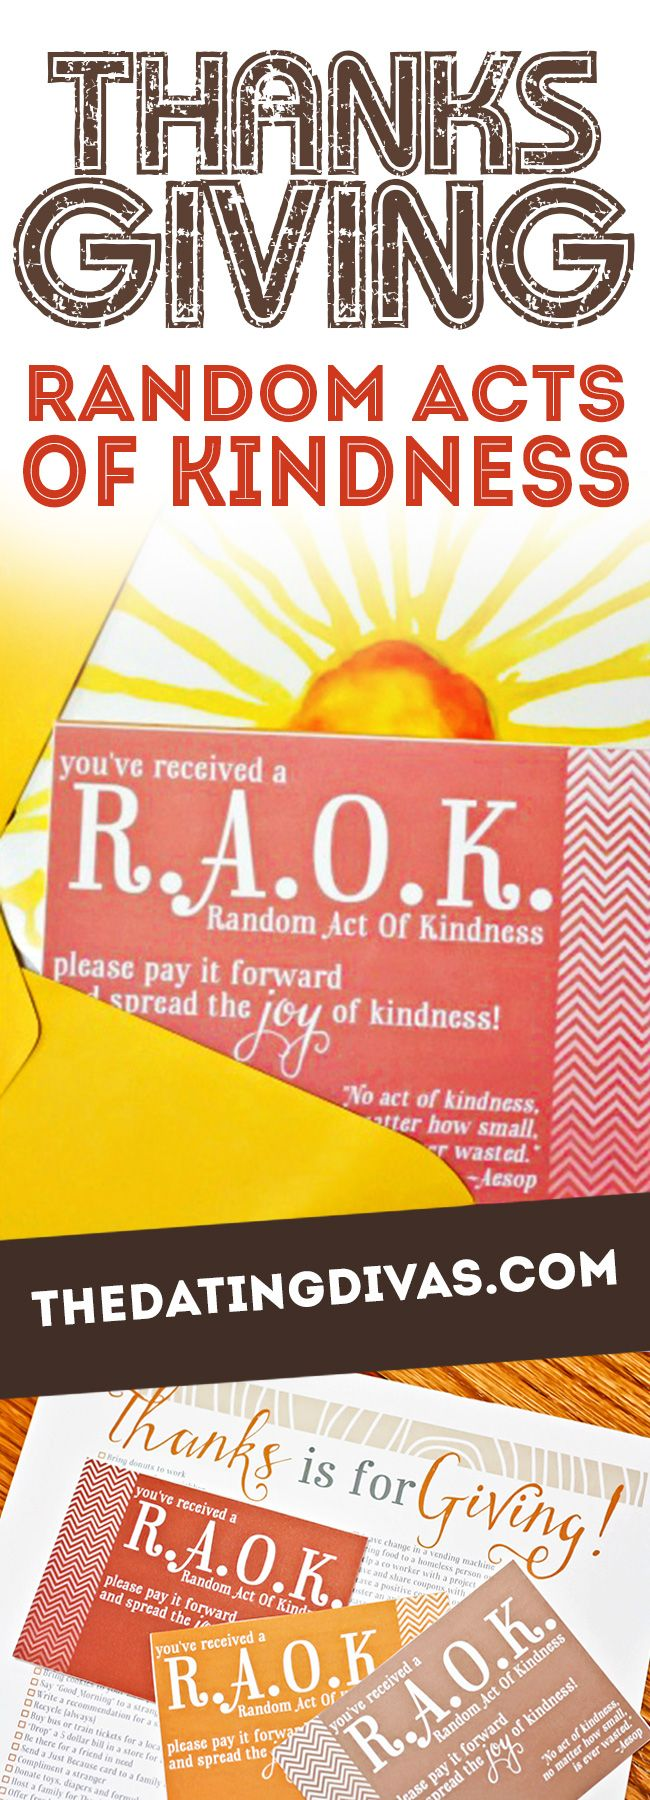 What an AMAZING list of ideas for Random Acts of Kindess! Can't wait to make someone's day. www.TheDatingDivas.com